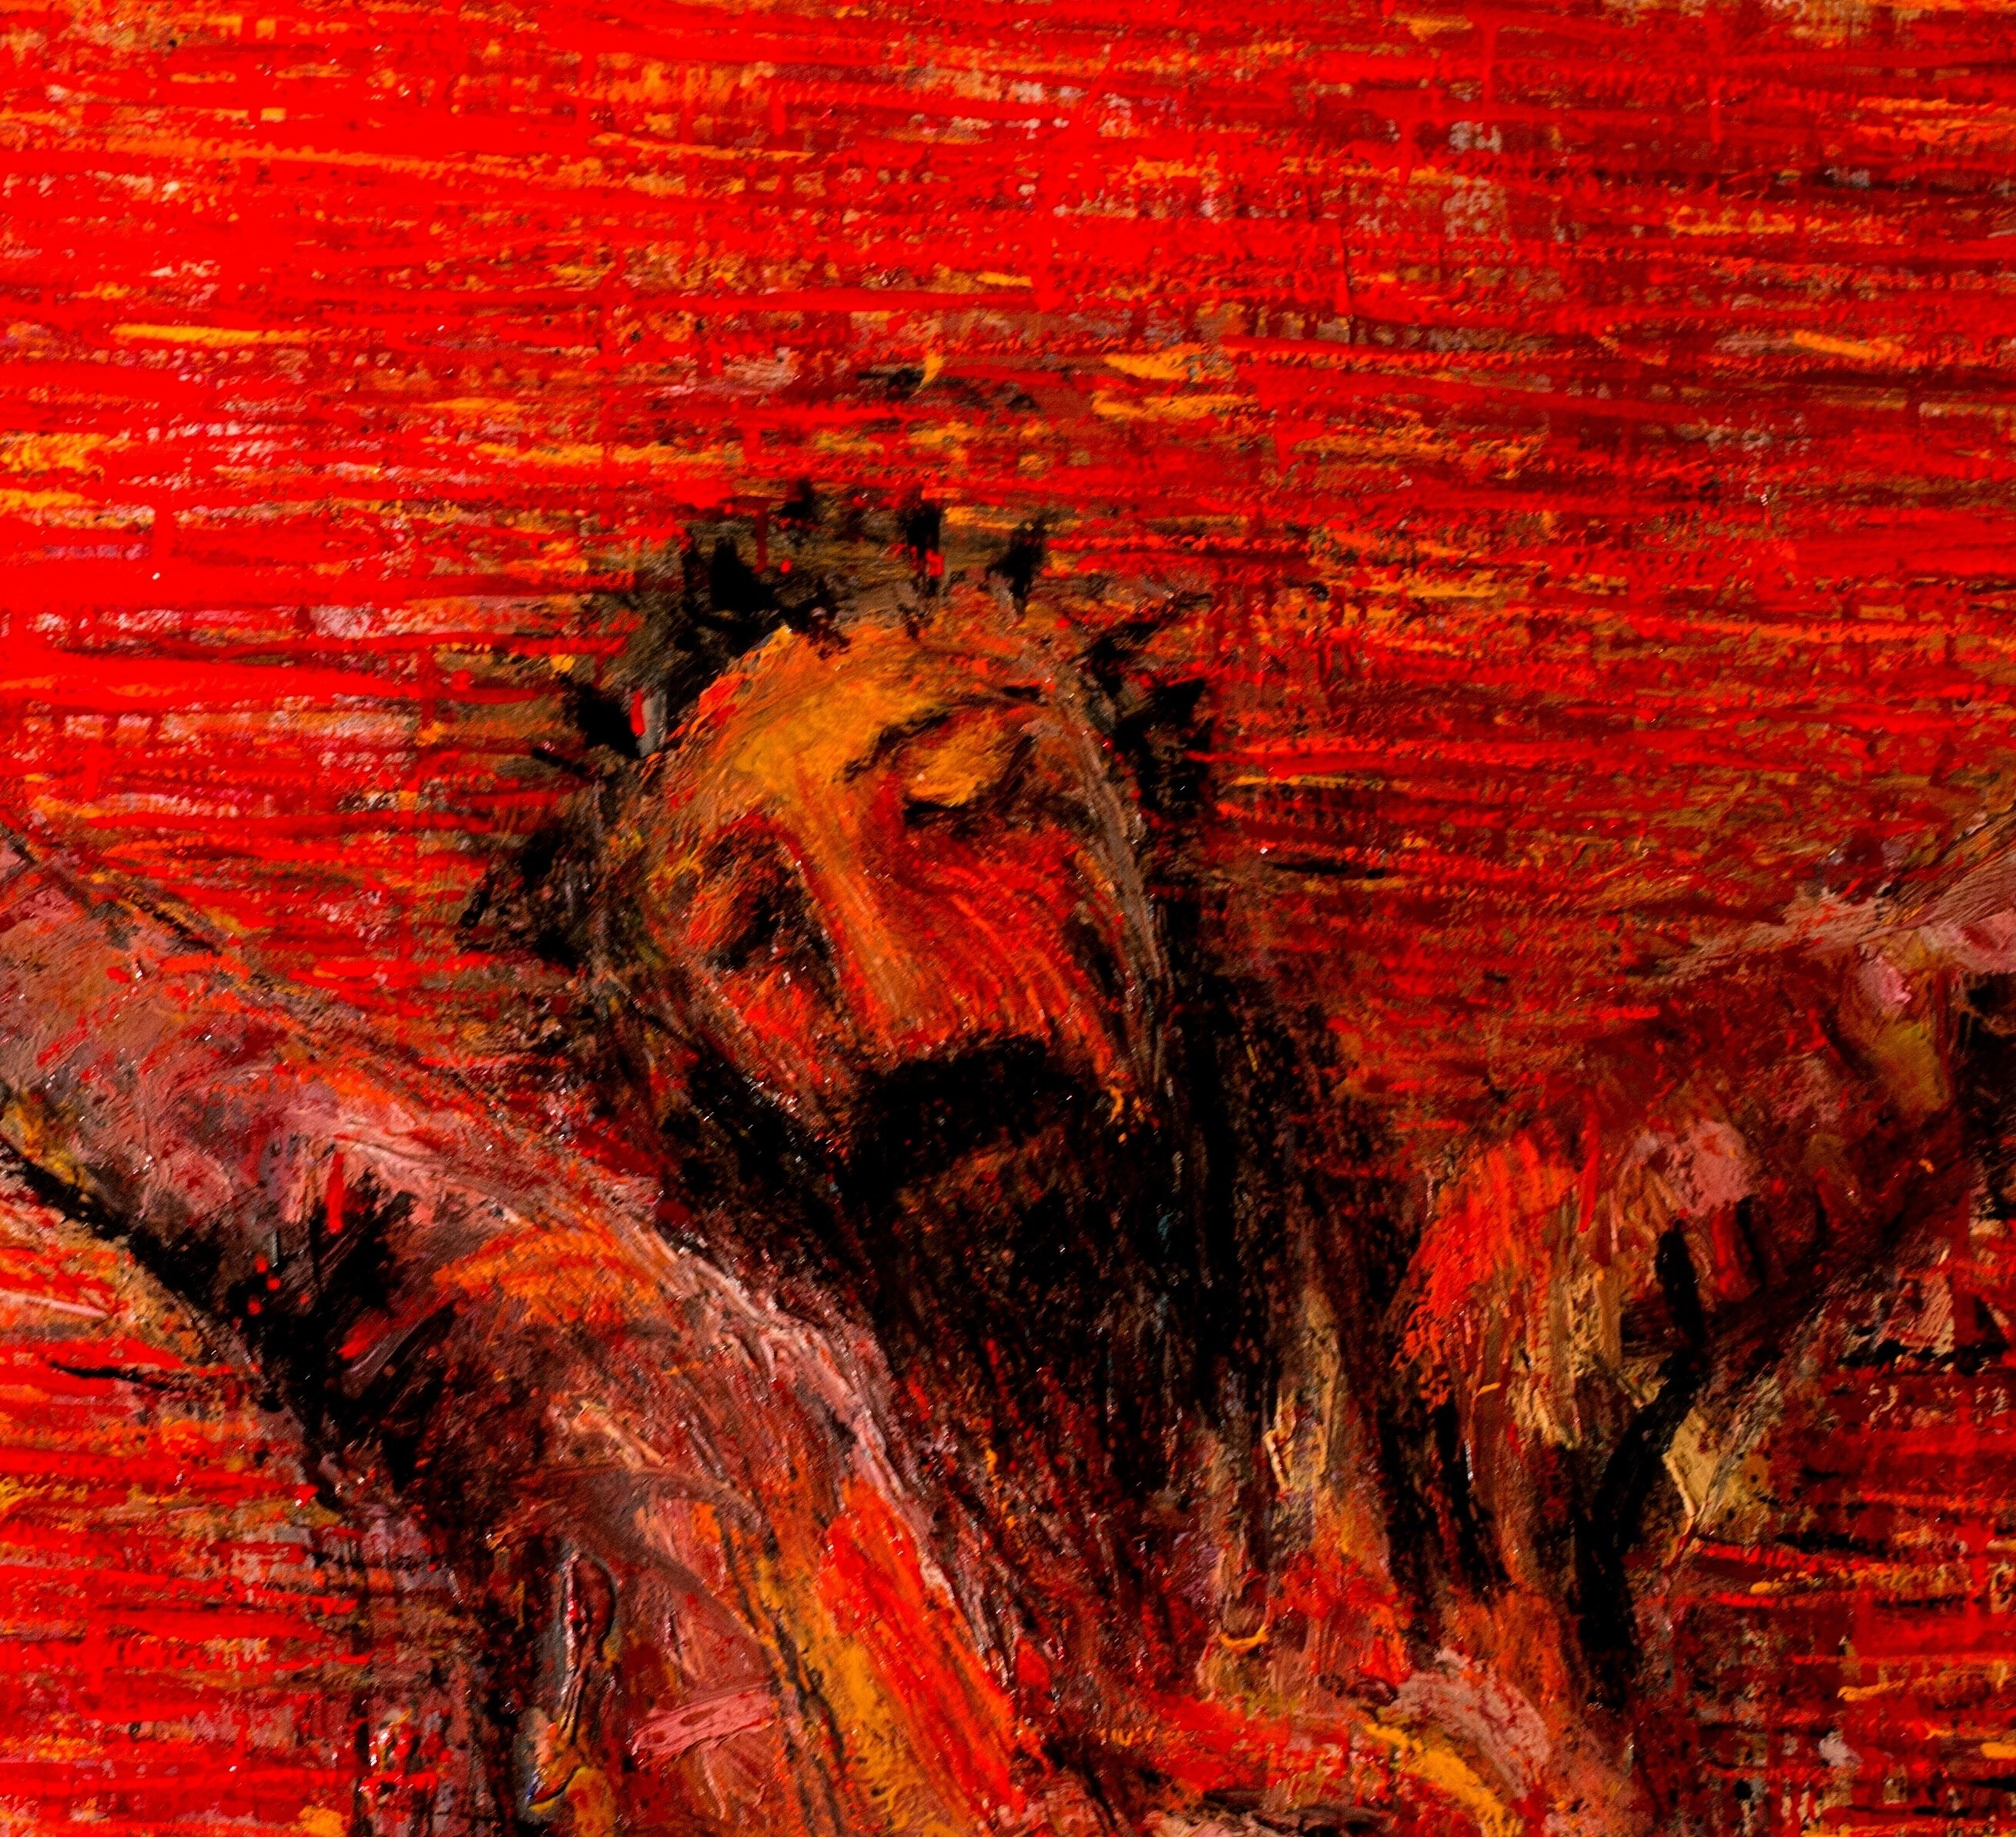 A Crucificação, original Big Hardboard Painting by Alberto Péssimo